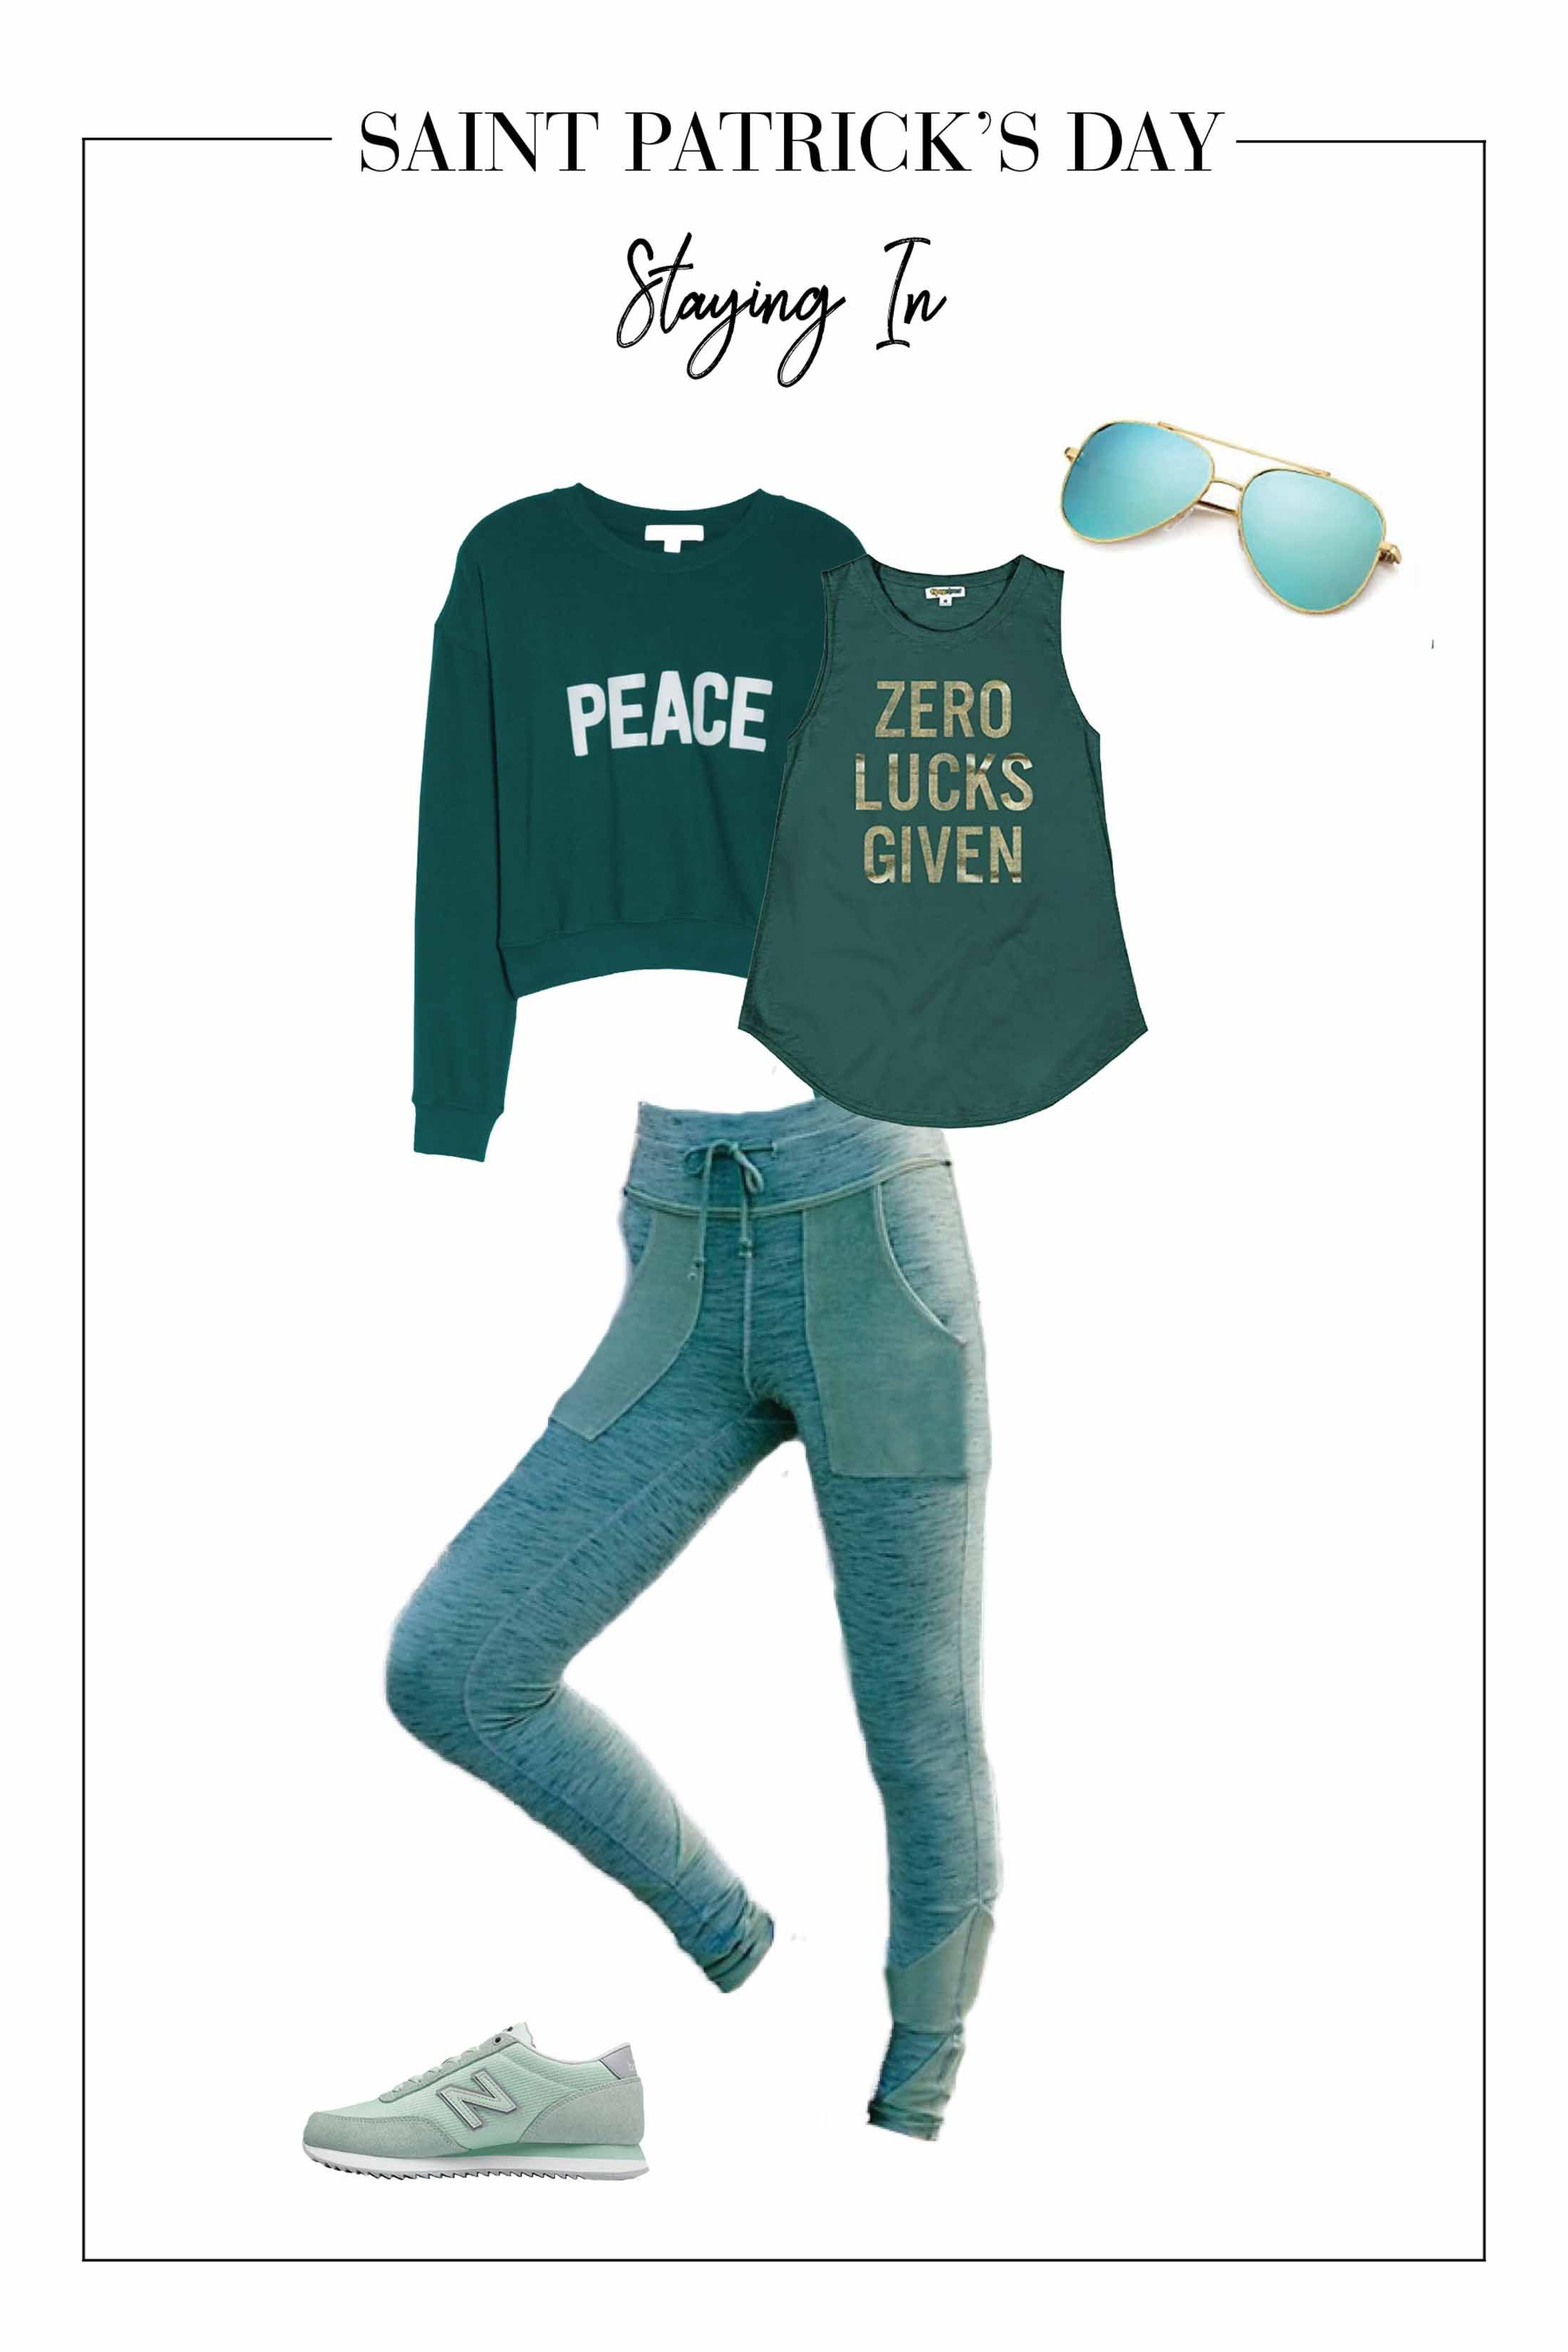 543d3cb9d PADDY'S DAY OUTFITS YOU'LL WANT TO WEAR AGAIN | St. Patrick's Day can be  super-FUN! But, we all want a cute outfit we can wear again — amiright?